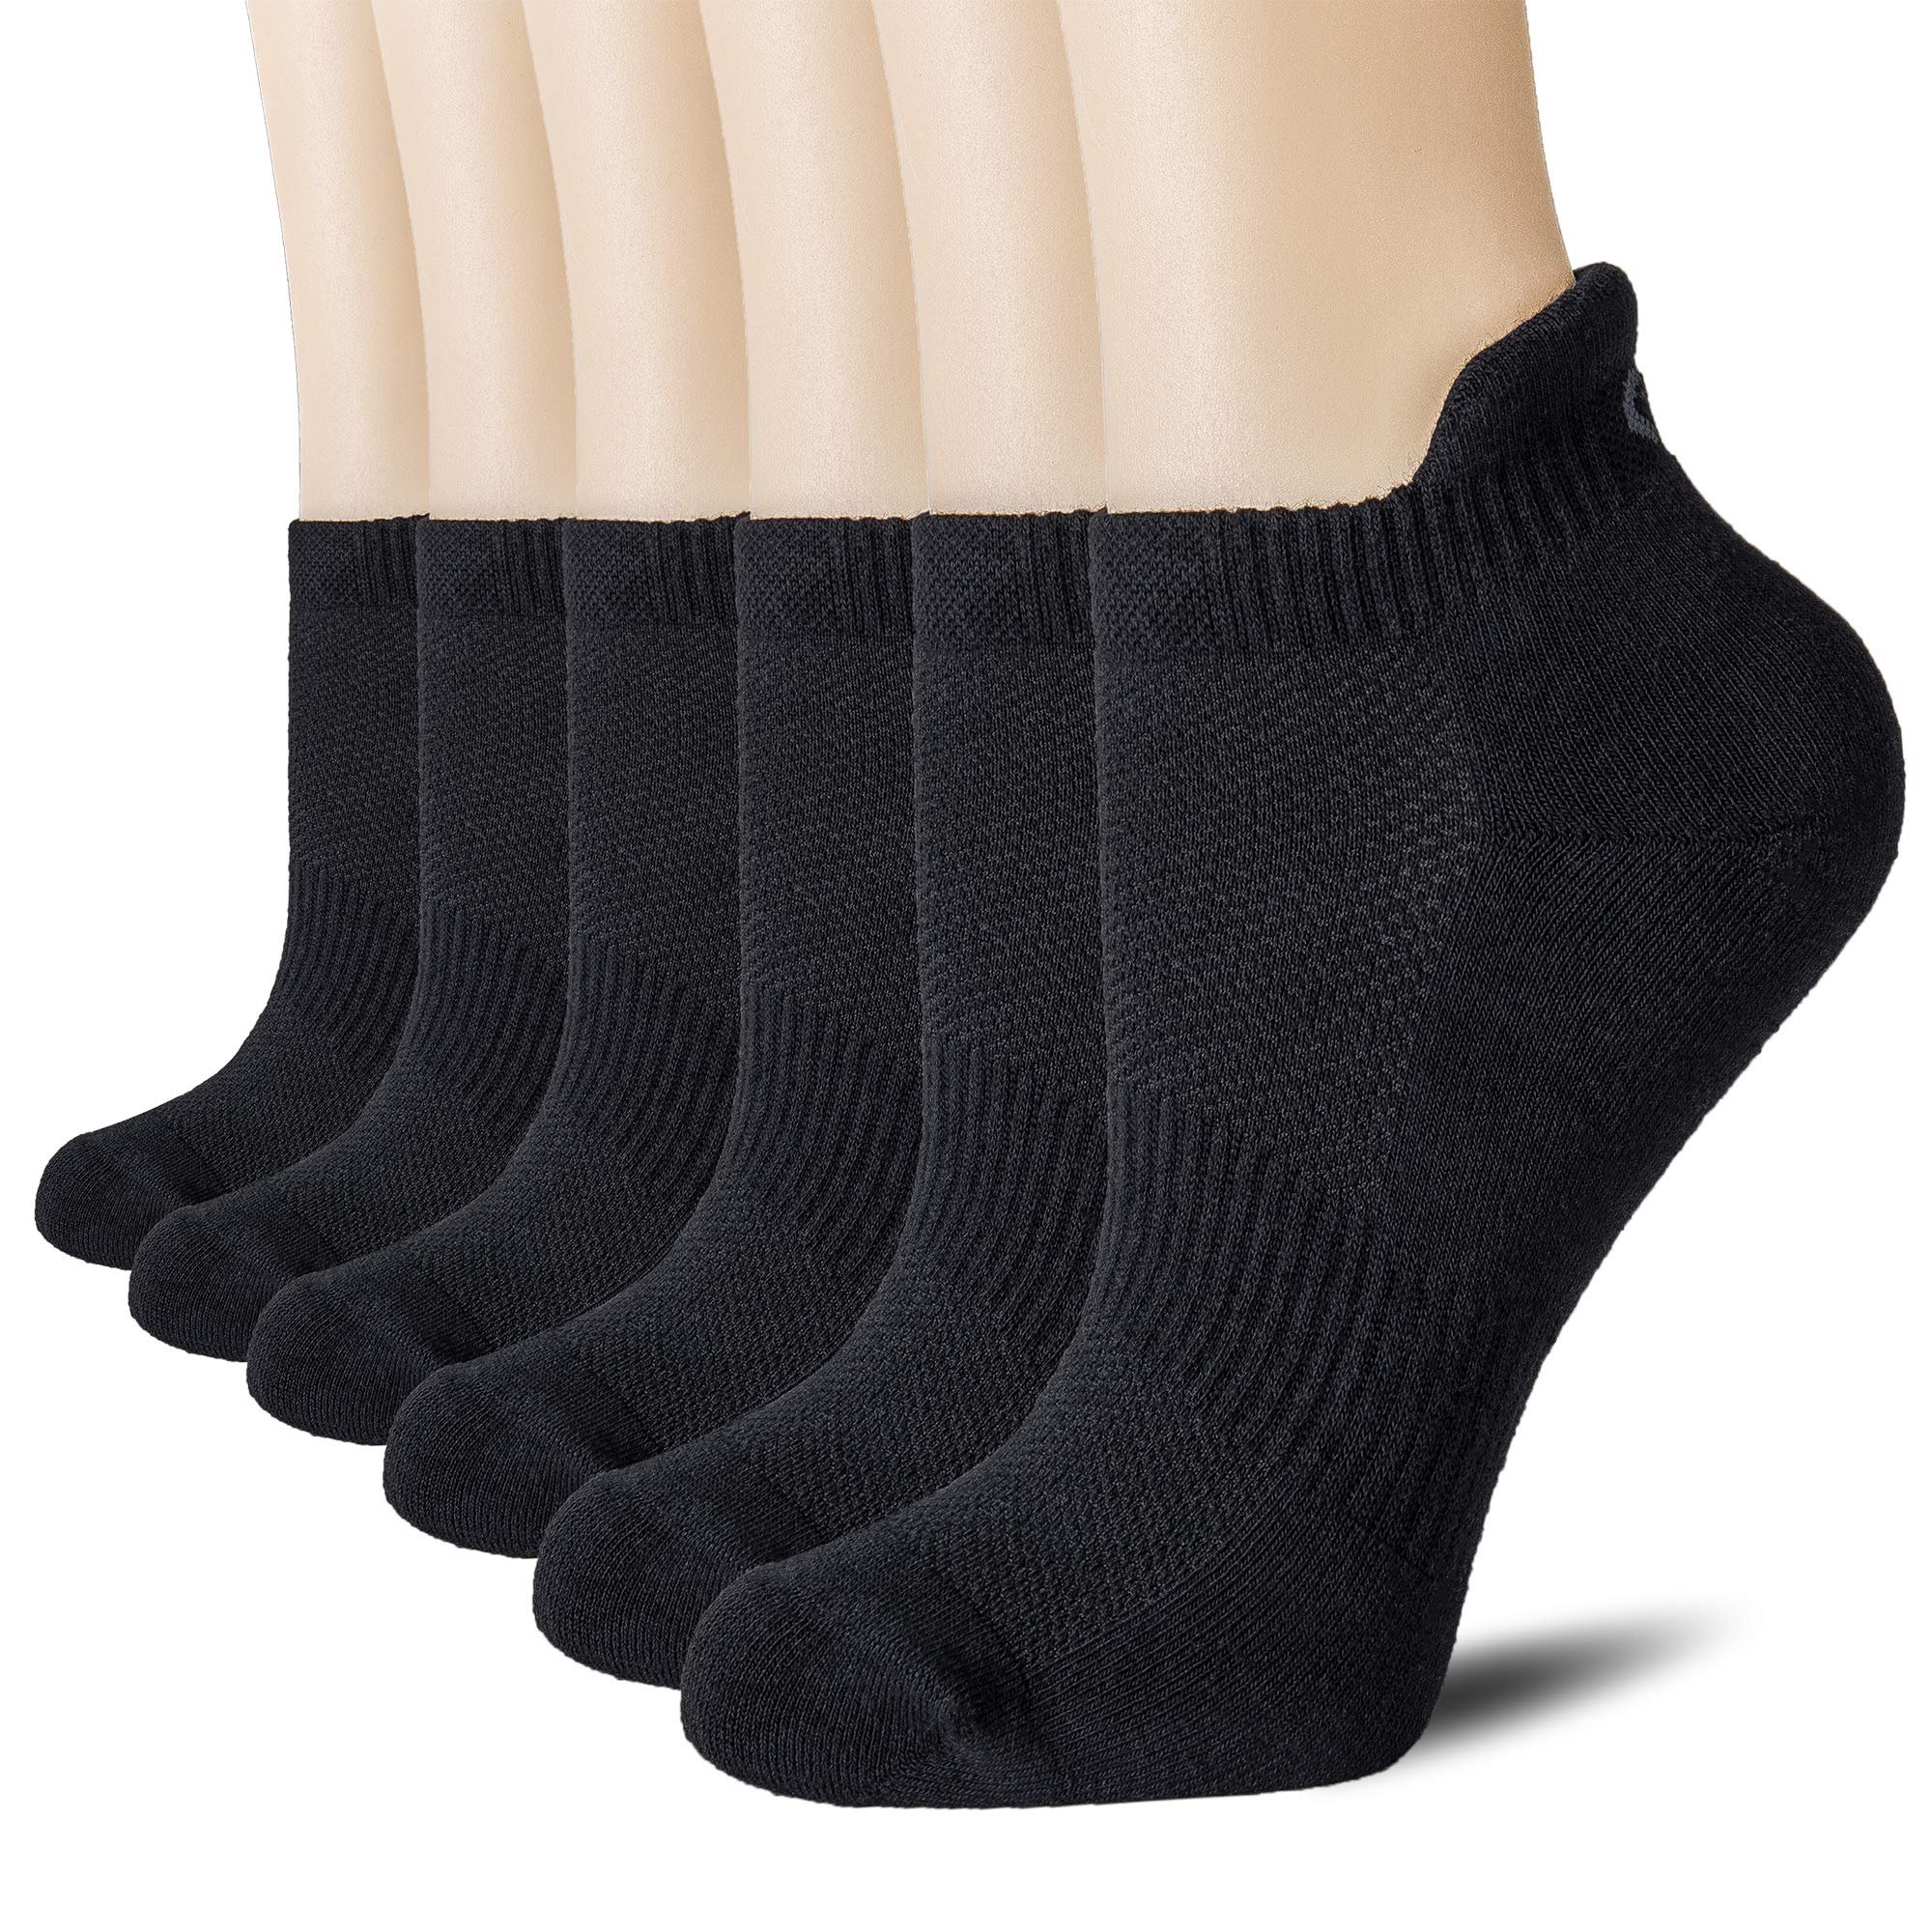 CelerSport Cushion No Show Tab Athletic Running Socks for Men and Women (6 Pairs),Small, Black